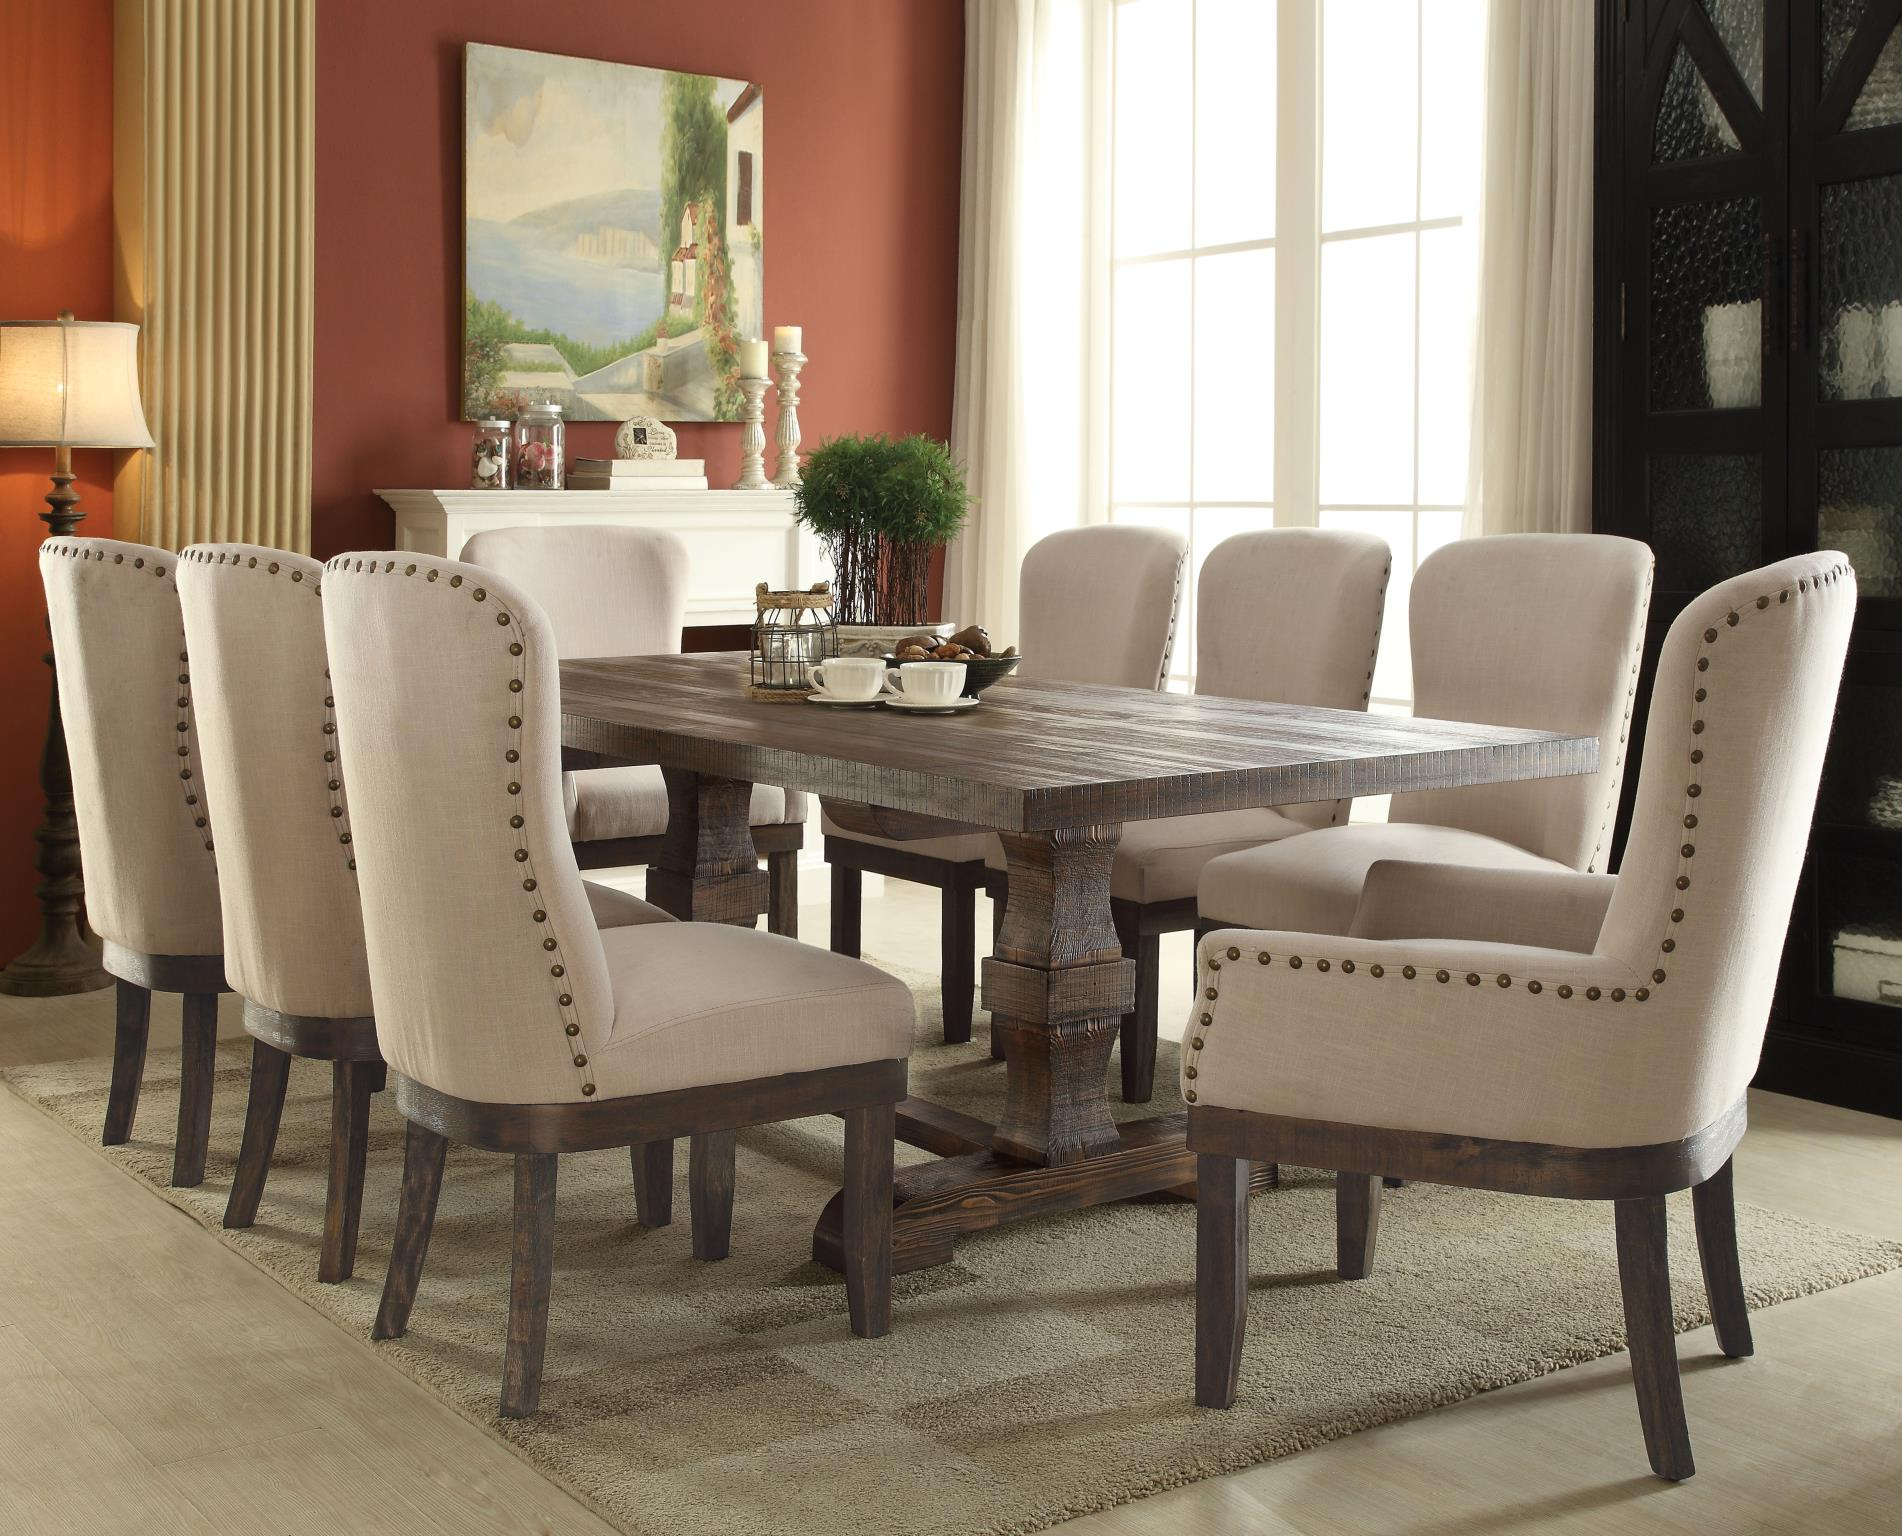 Complete Dining Table Set w/ 8 Chairs